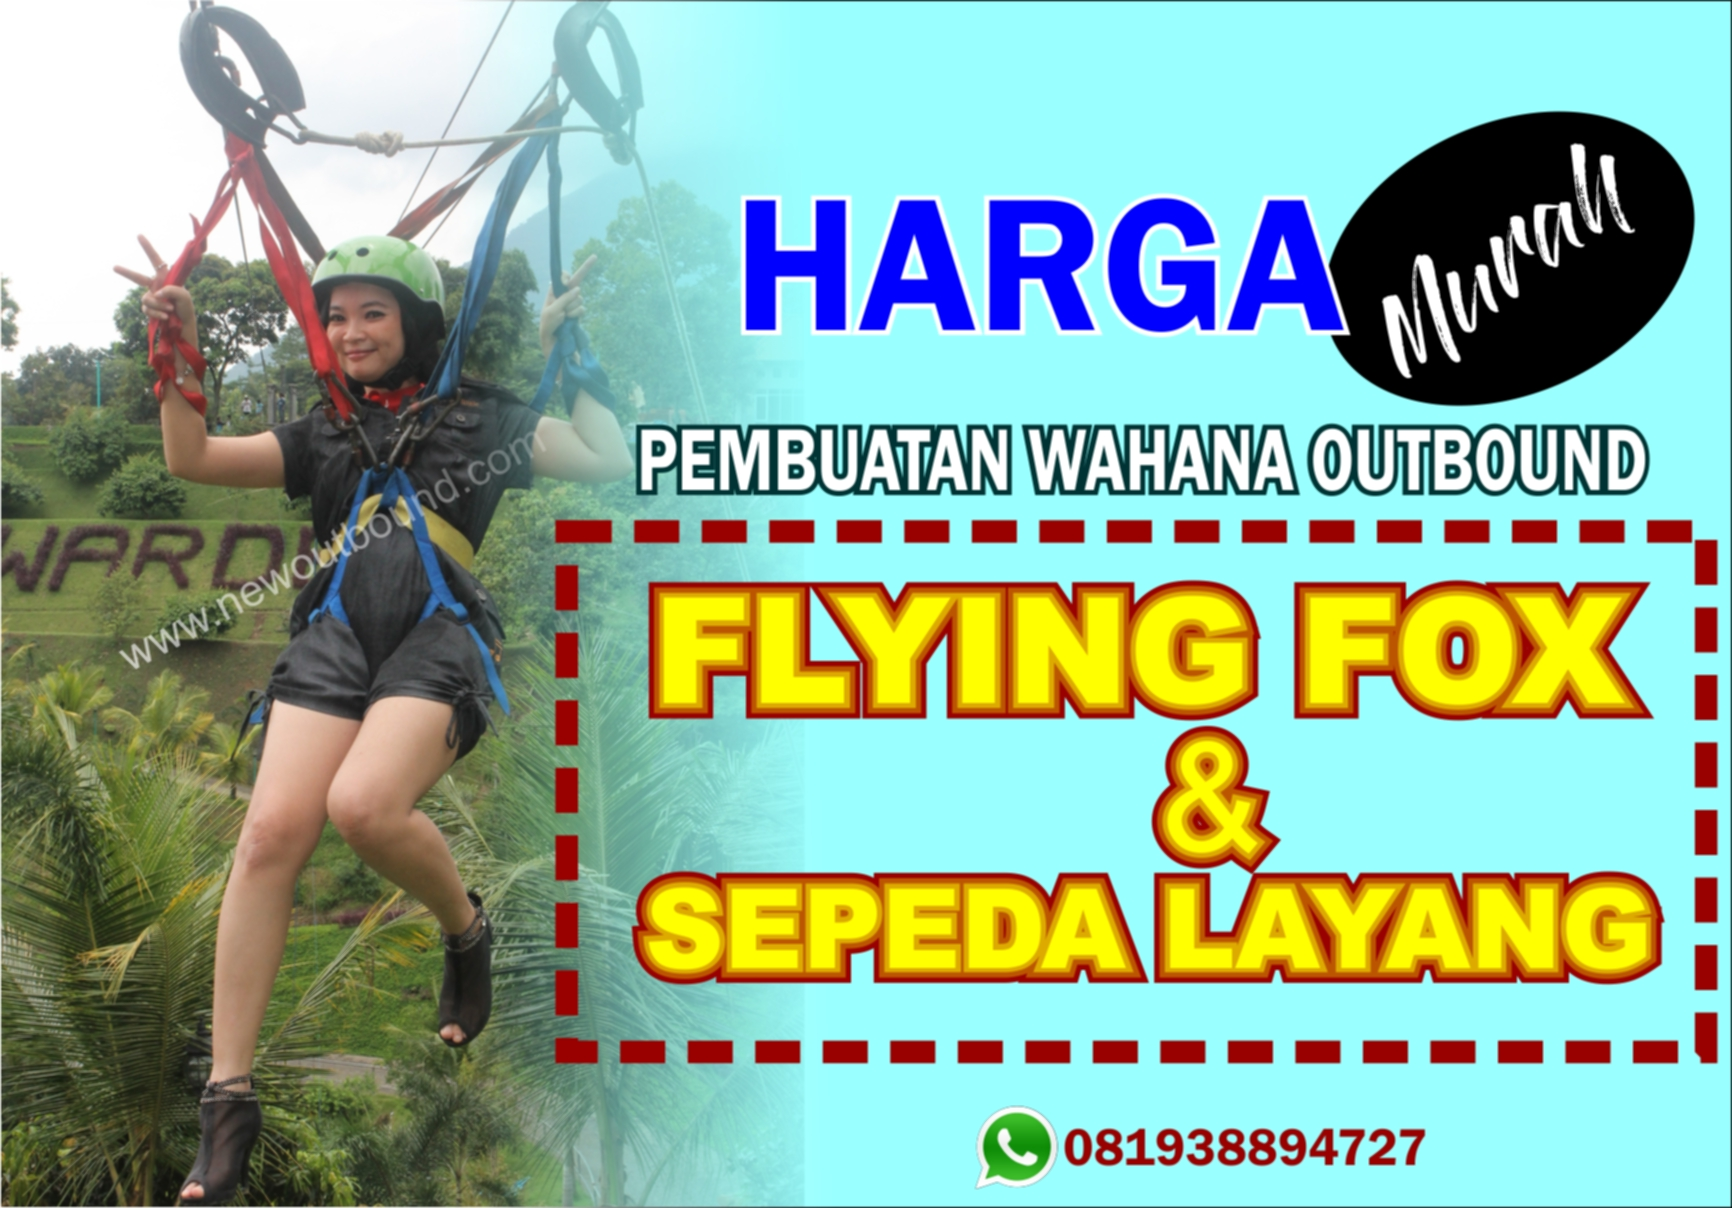 Instalasi Flying fox